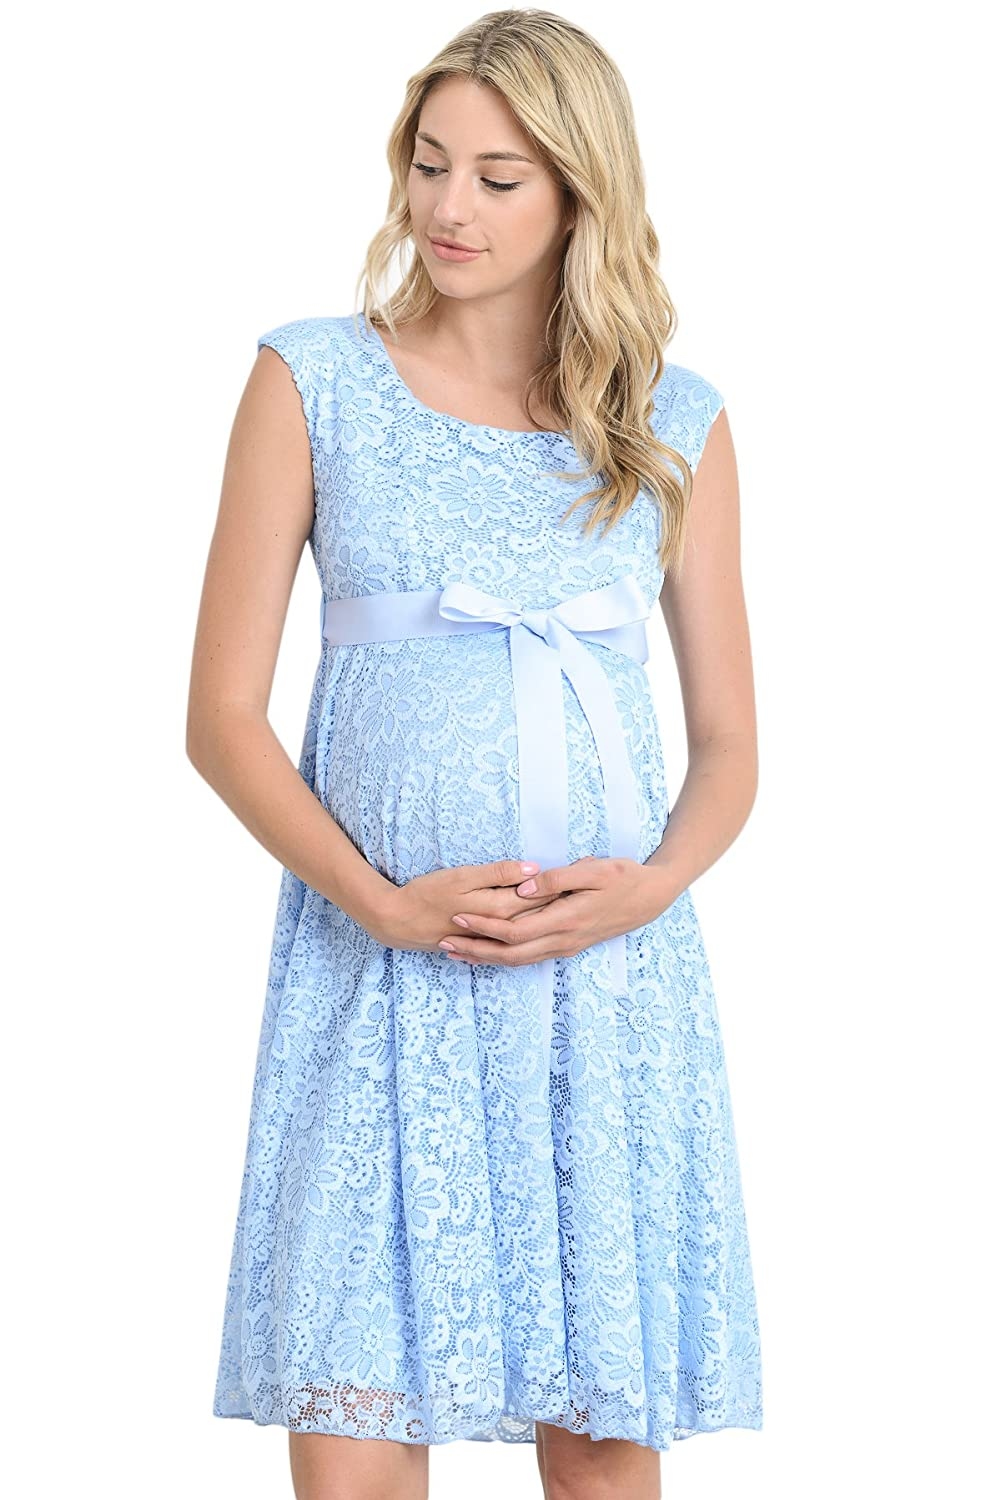 Hello MIZ Maternity Floral Lace Baby Shower Party Cocktail Dress ...